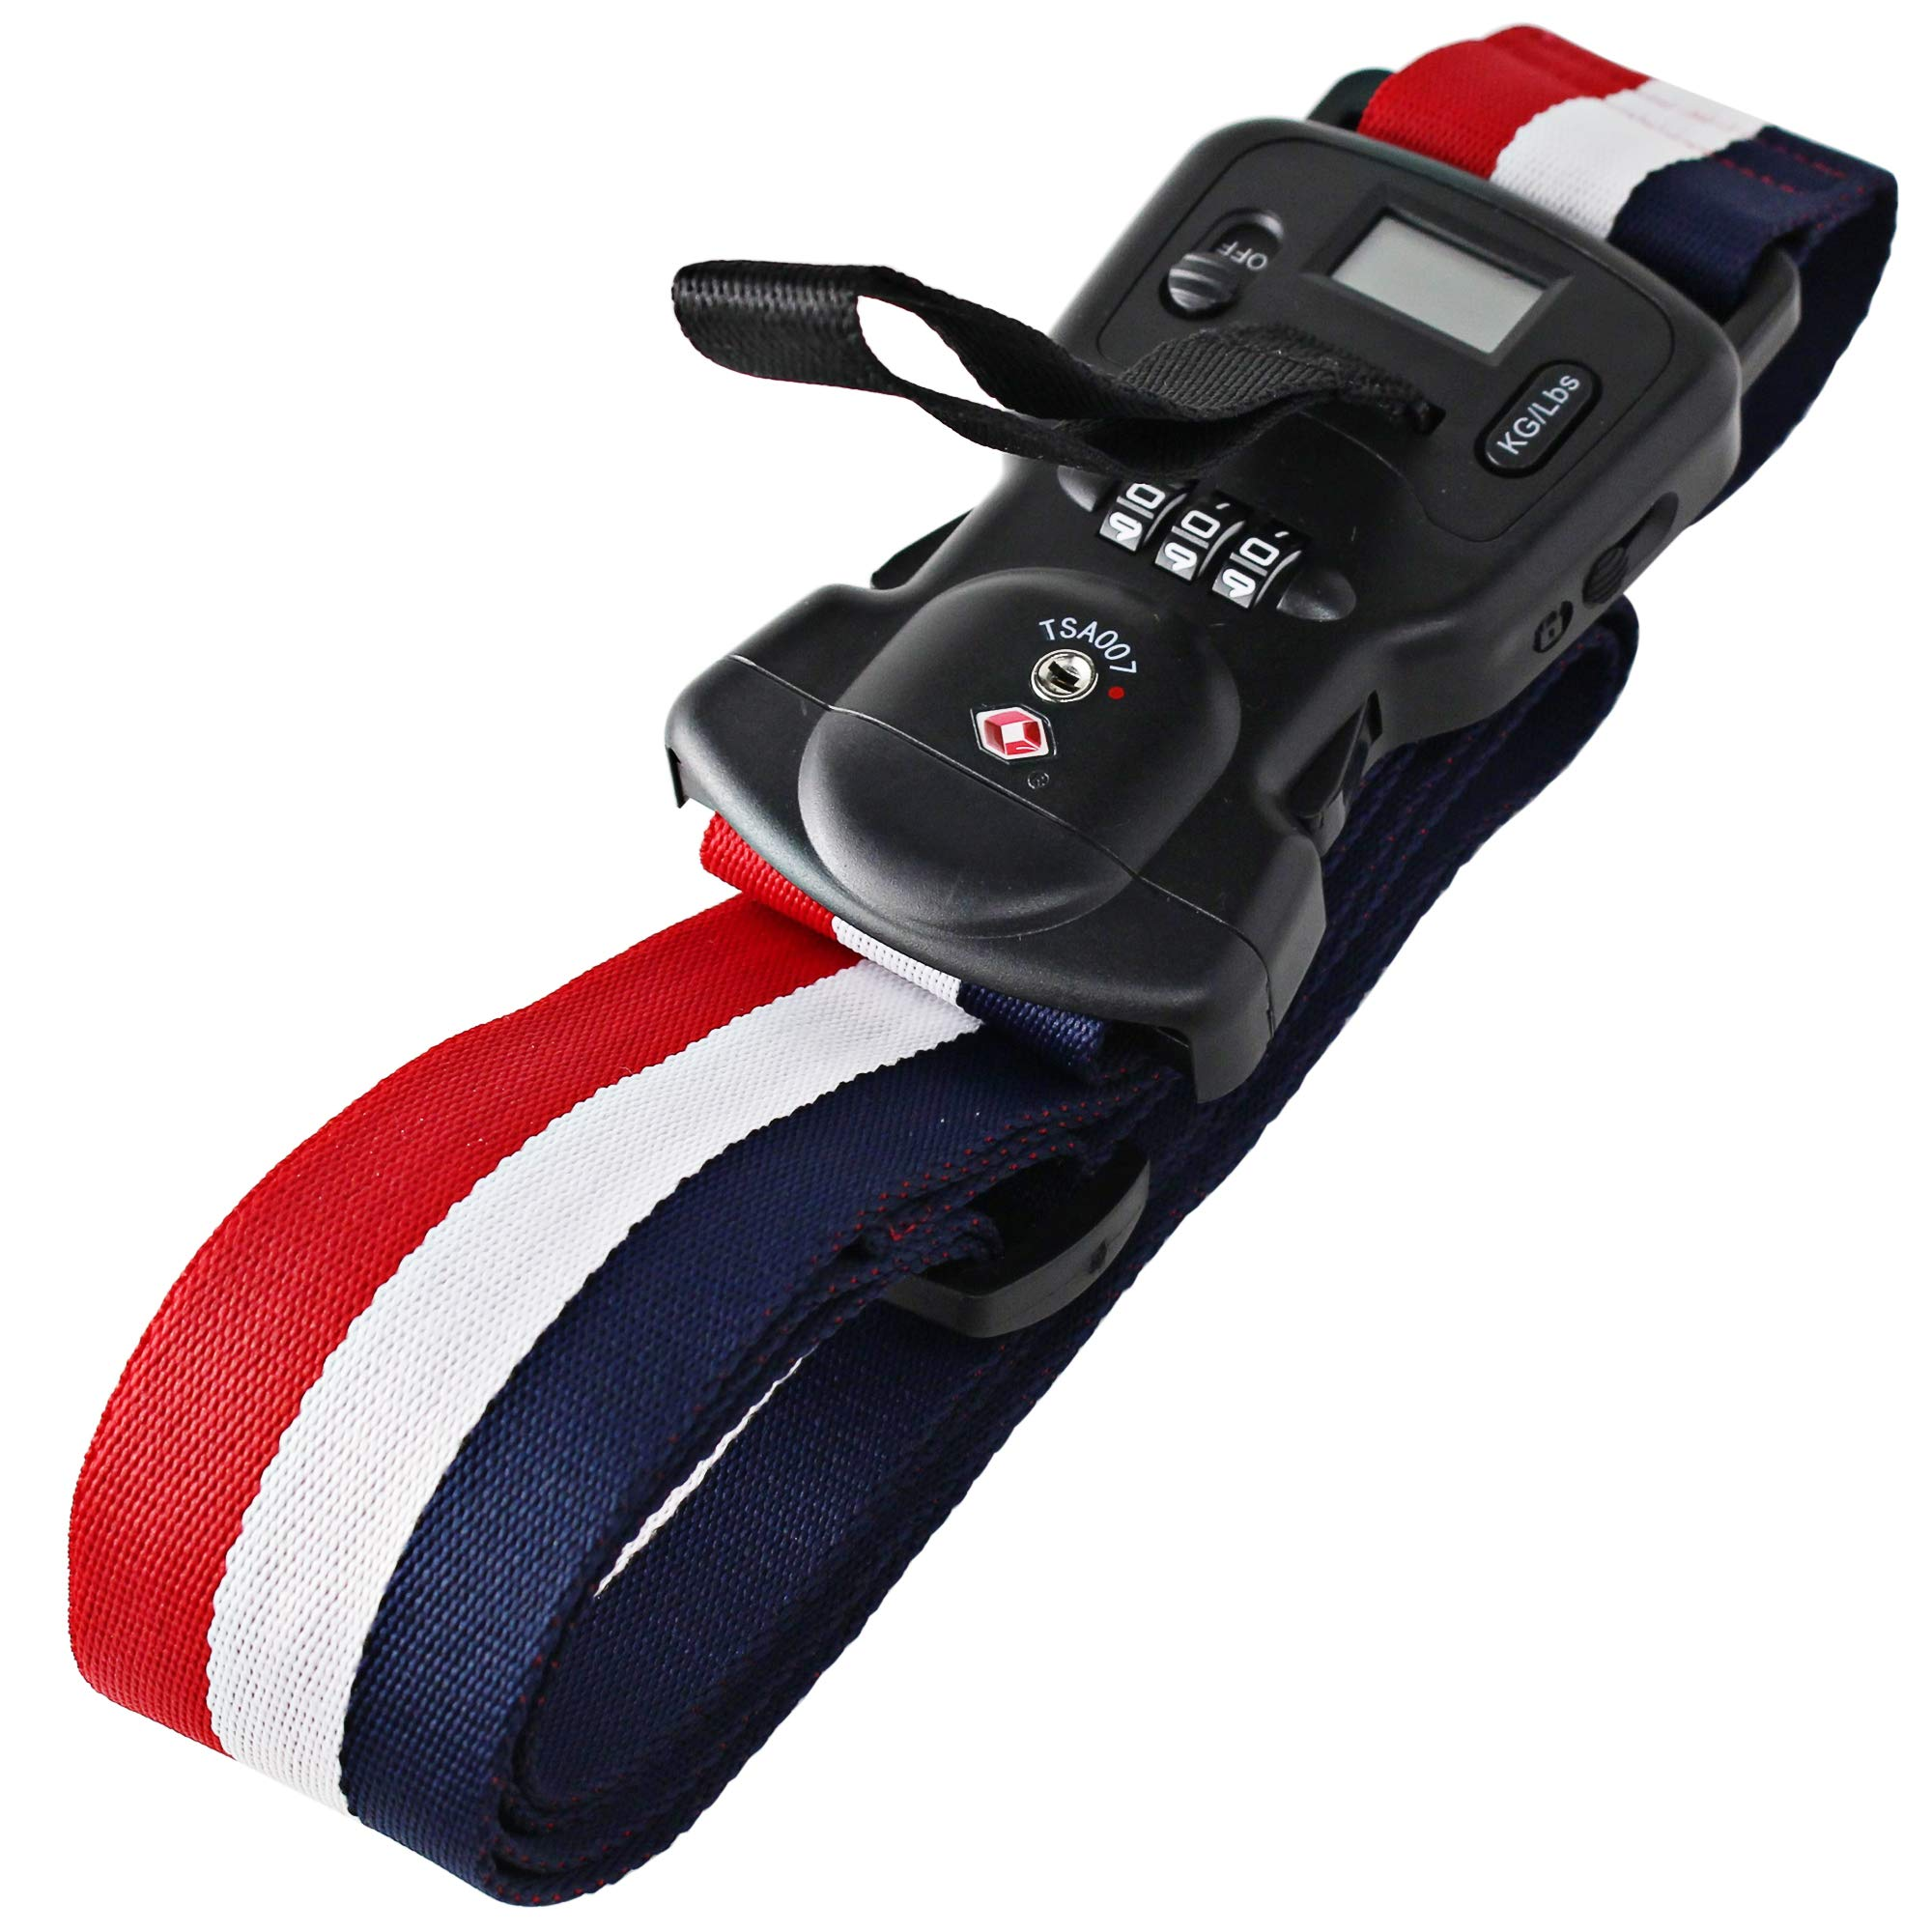 NicoDee Premium 3-in-1 Travel Luggage Bag Strap with Built-in TSA Lock and Digital Scale Set Your own Code and Keep Contents Secure, Safe from Theft, Plus Know its Weight! (red-white-blue) by NicoDee